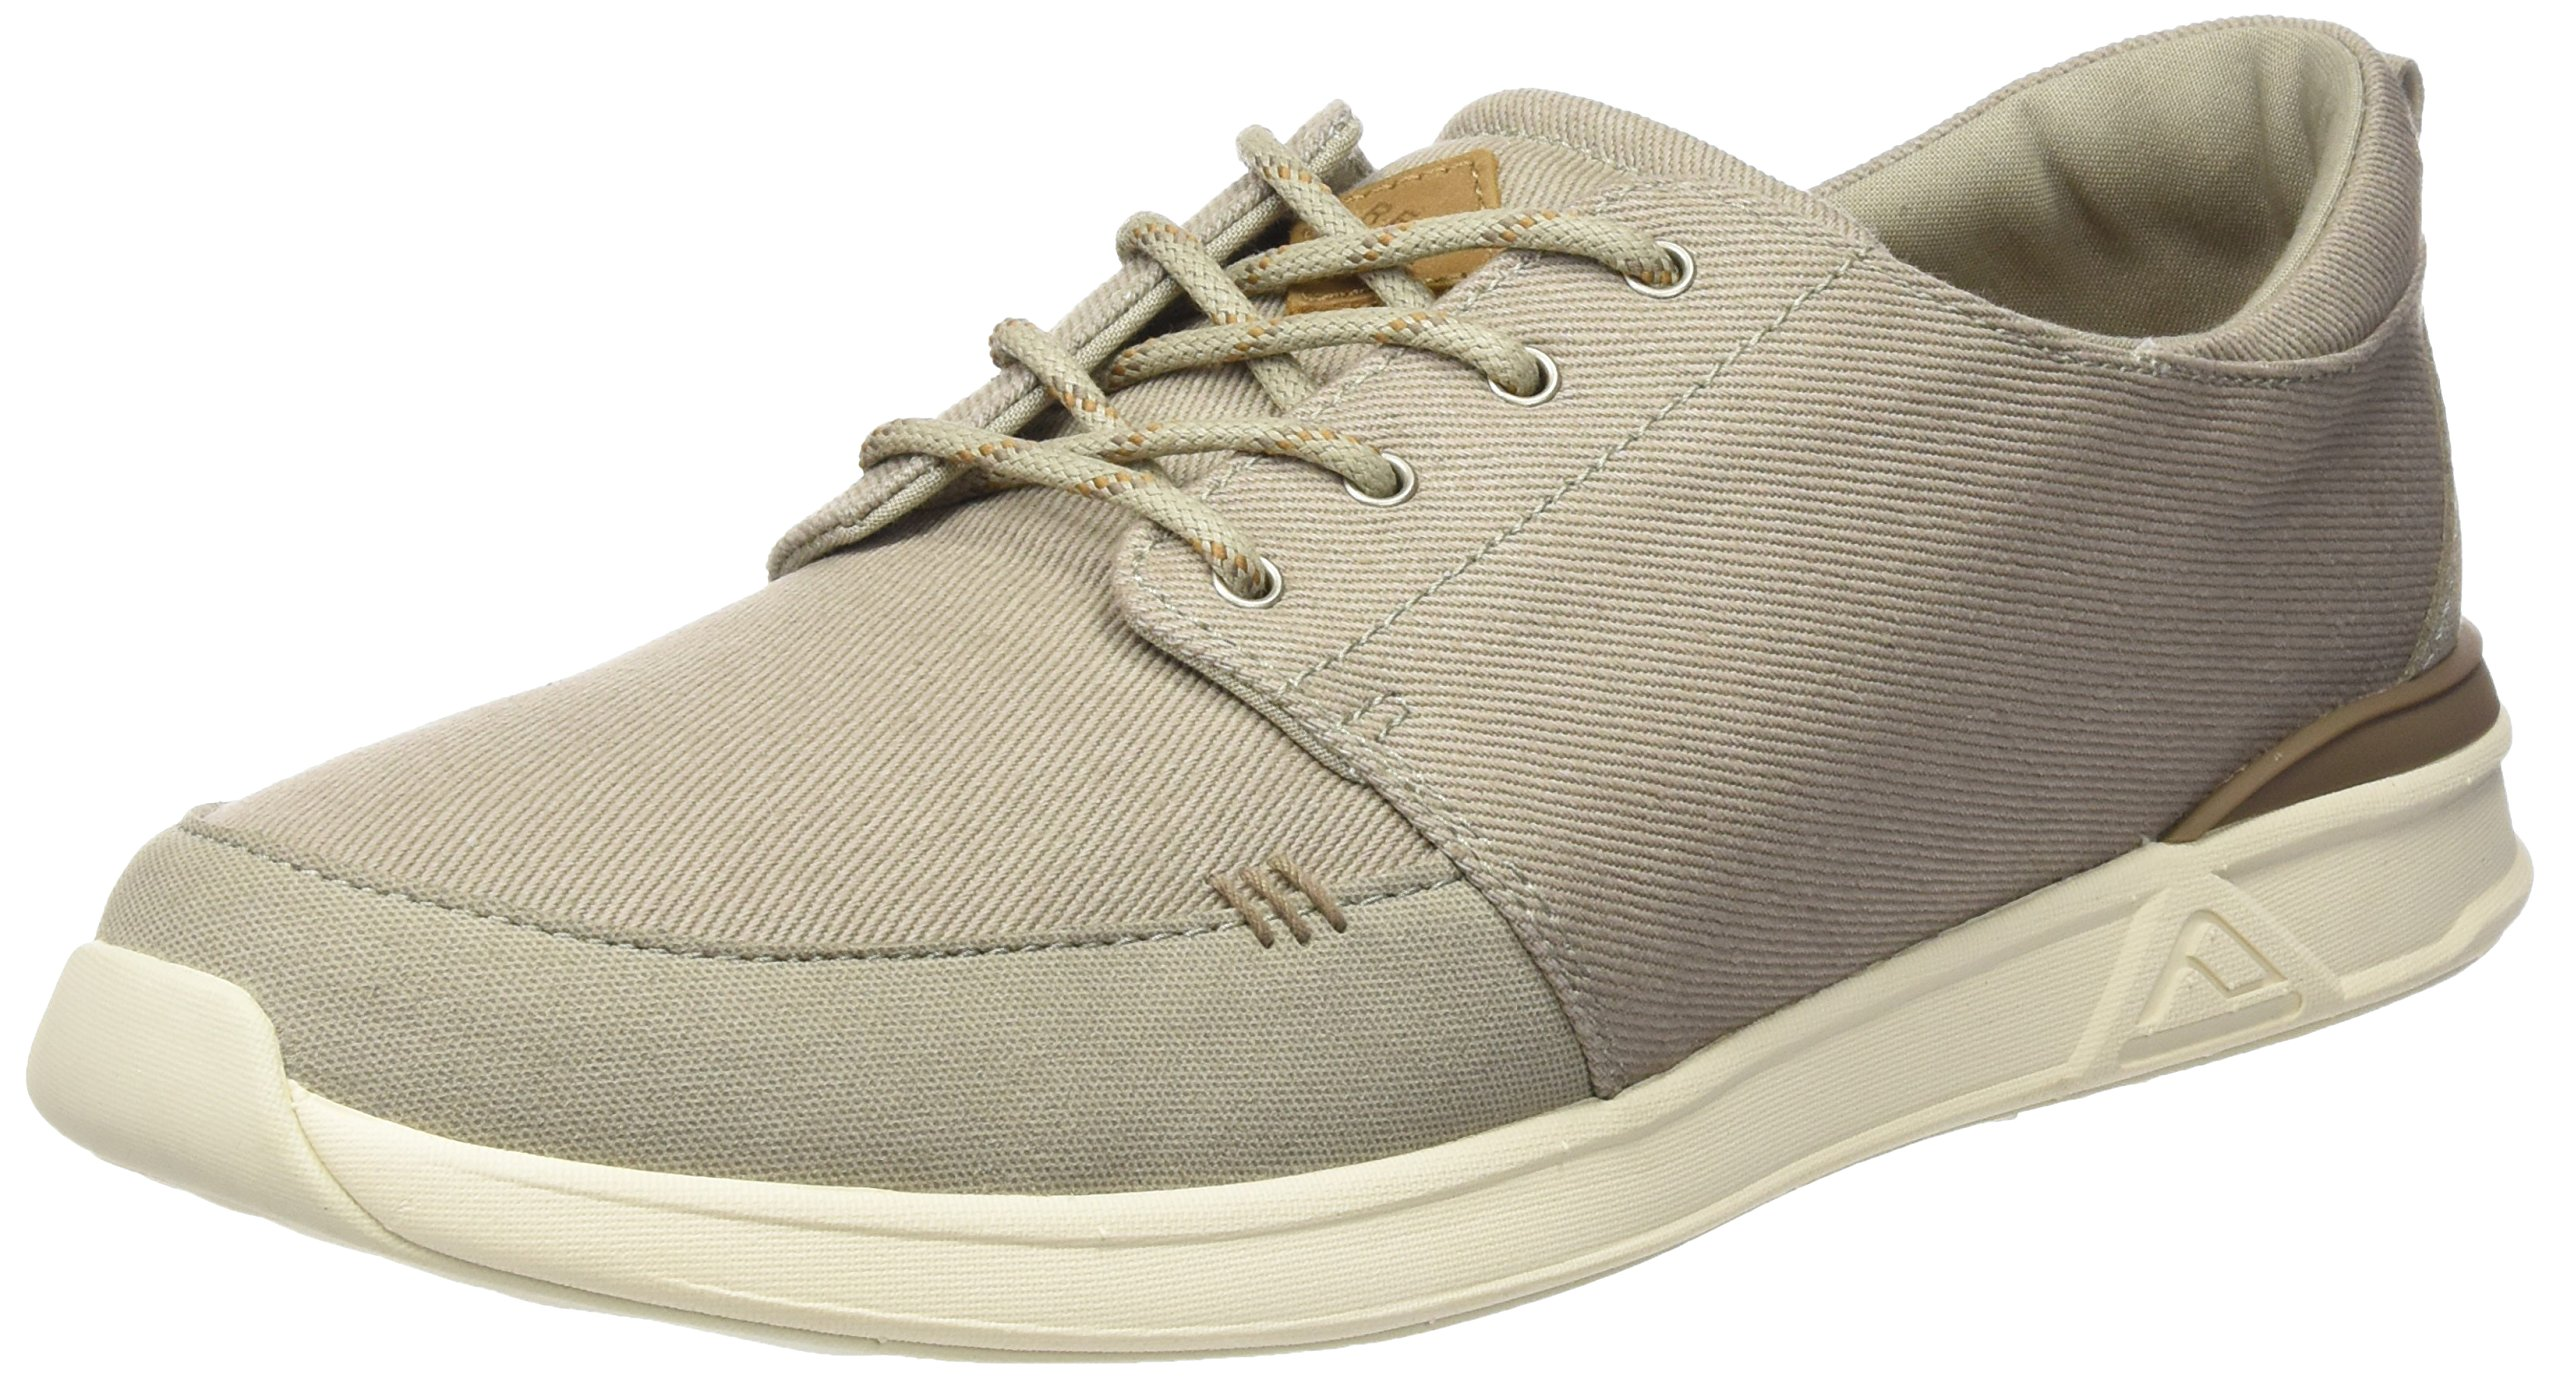 Reef Mens Rover Low Sneaker Sand Size 8